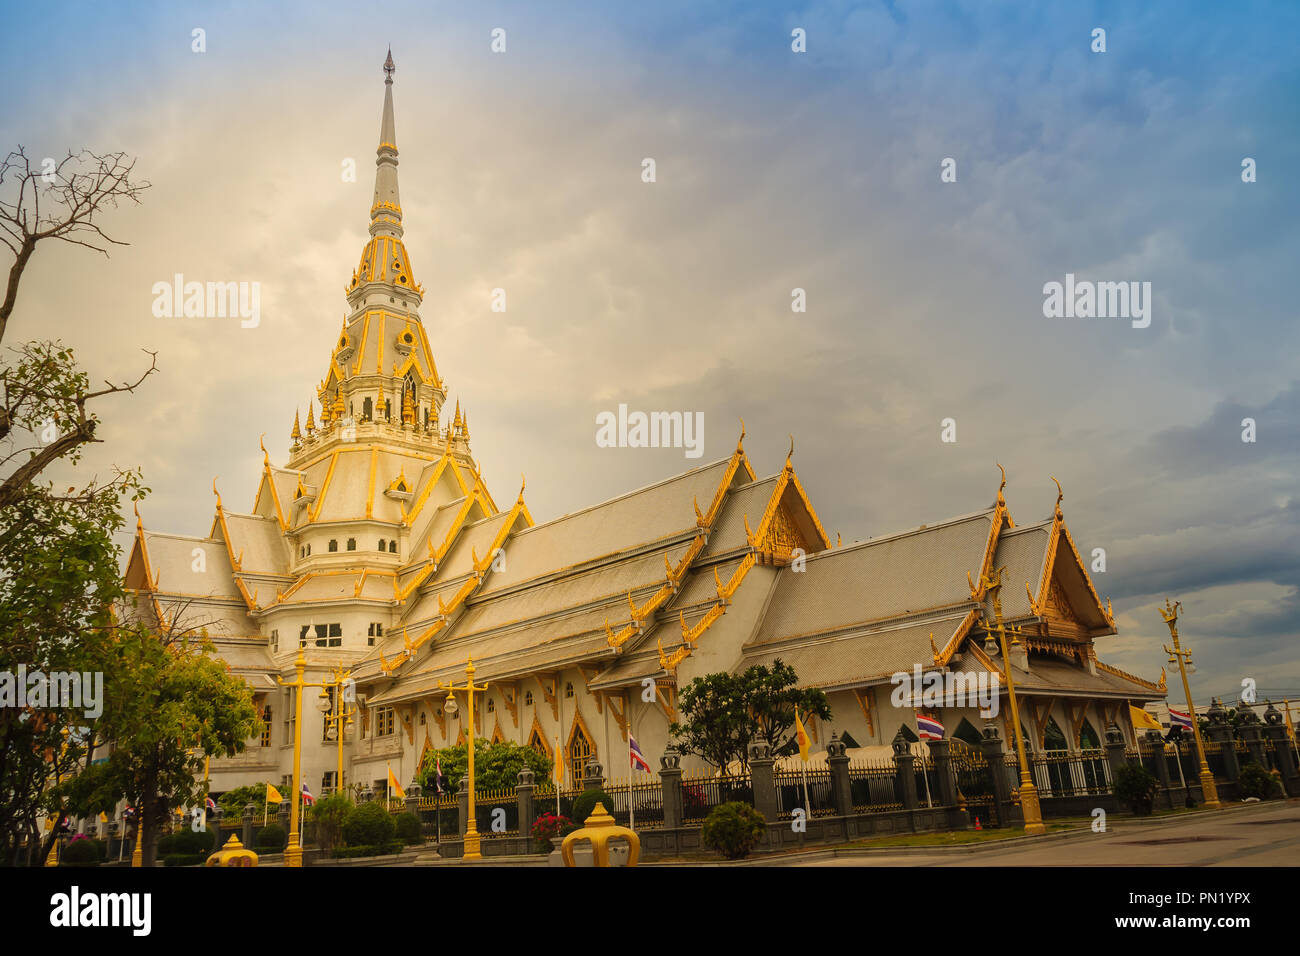 Beautiful golden pagoda at Wat Sothonwararam, a famous public temple in Chachoengsao Province, Thailand. - Stock Image